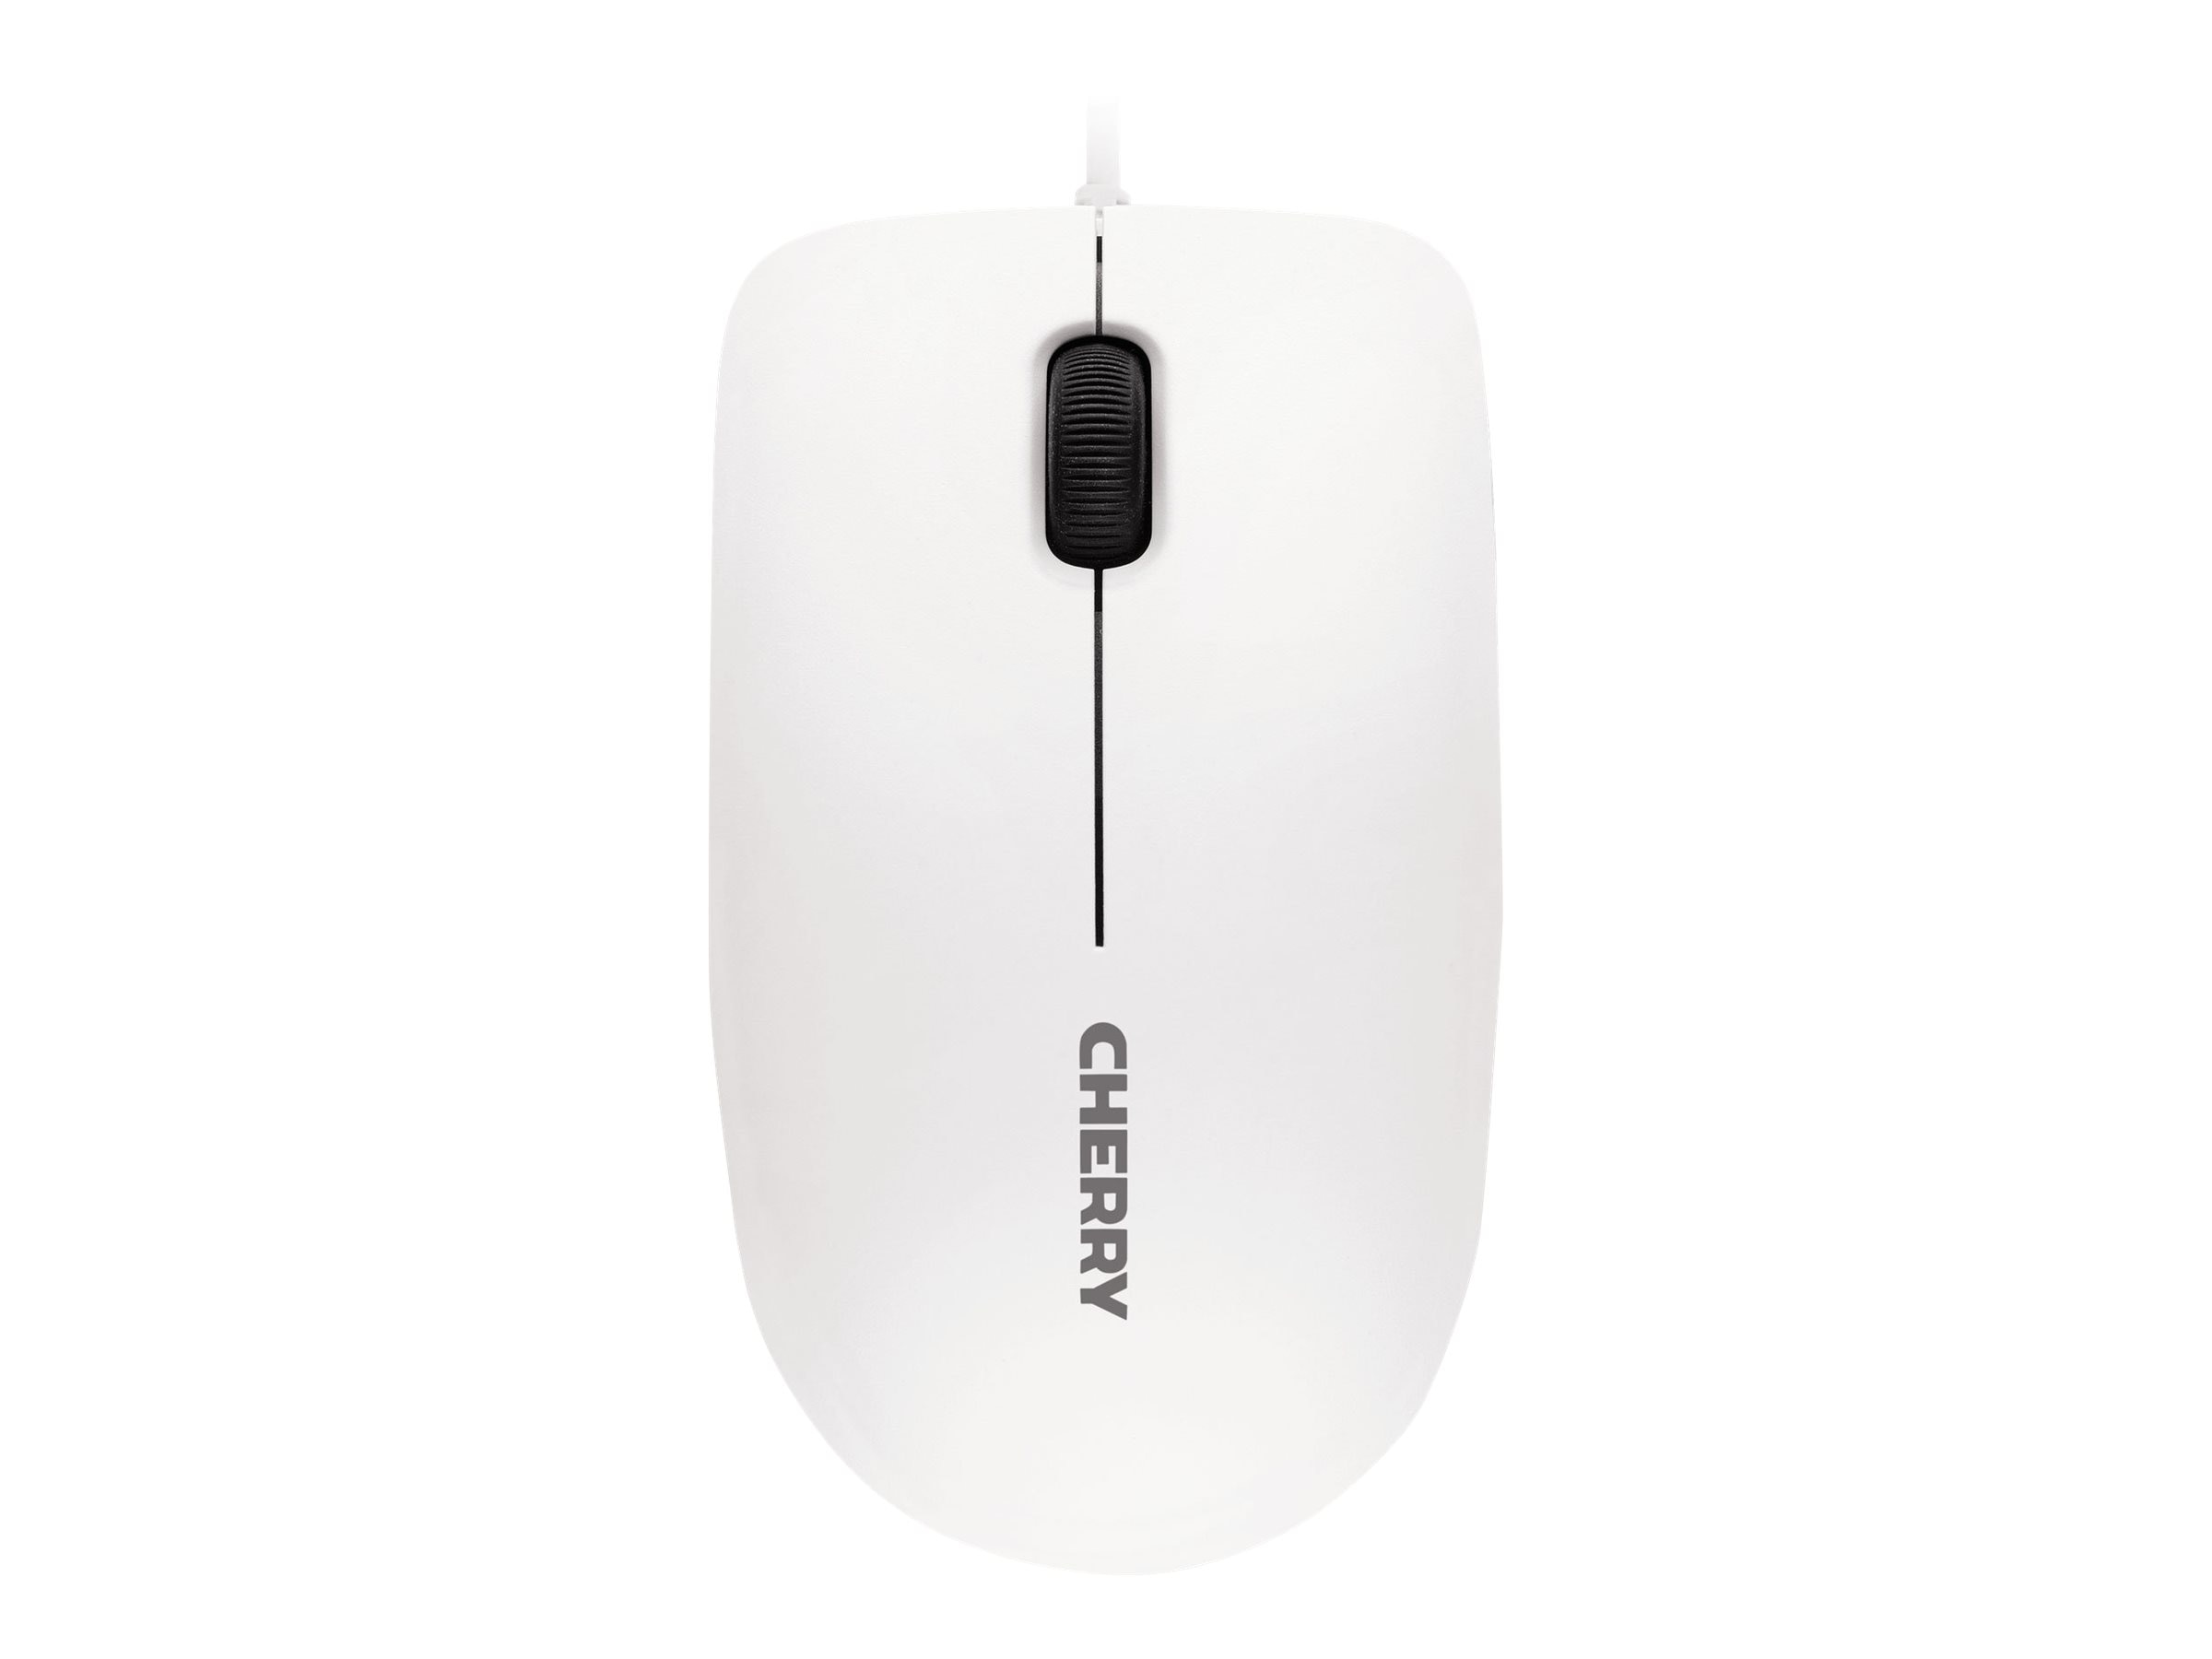 Cherry MC 1000 USB Mouse, 3-Button, 1200dpi, Pale Gray